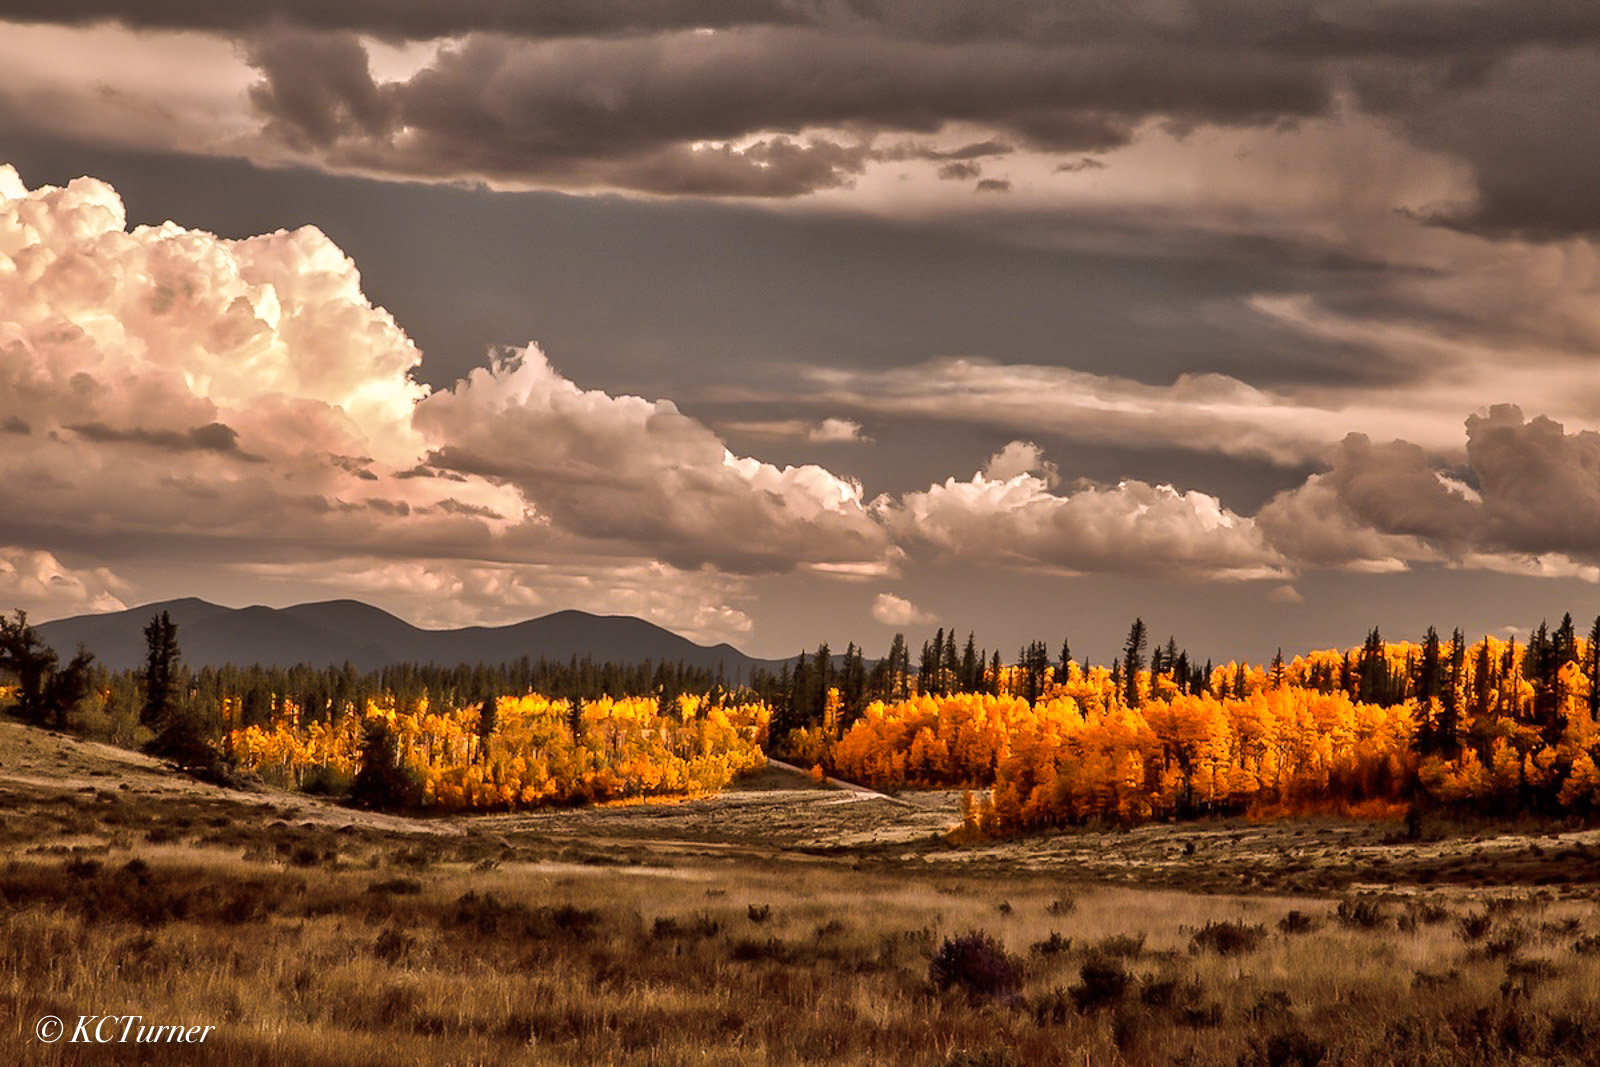 Colorado, pike national forest, lost creek wilderness, landscape, photo, photo